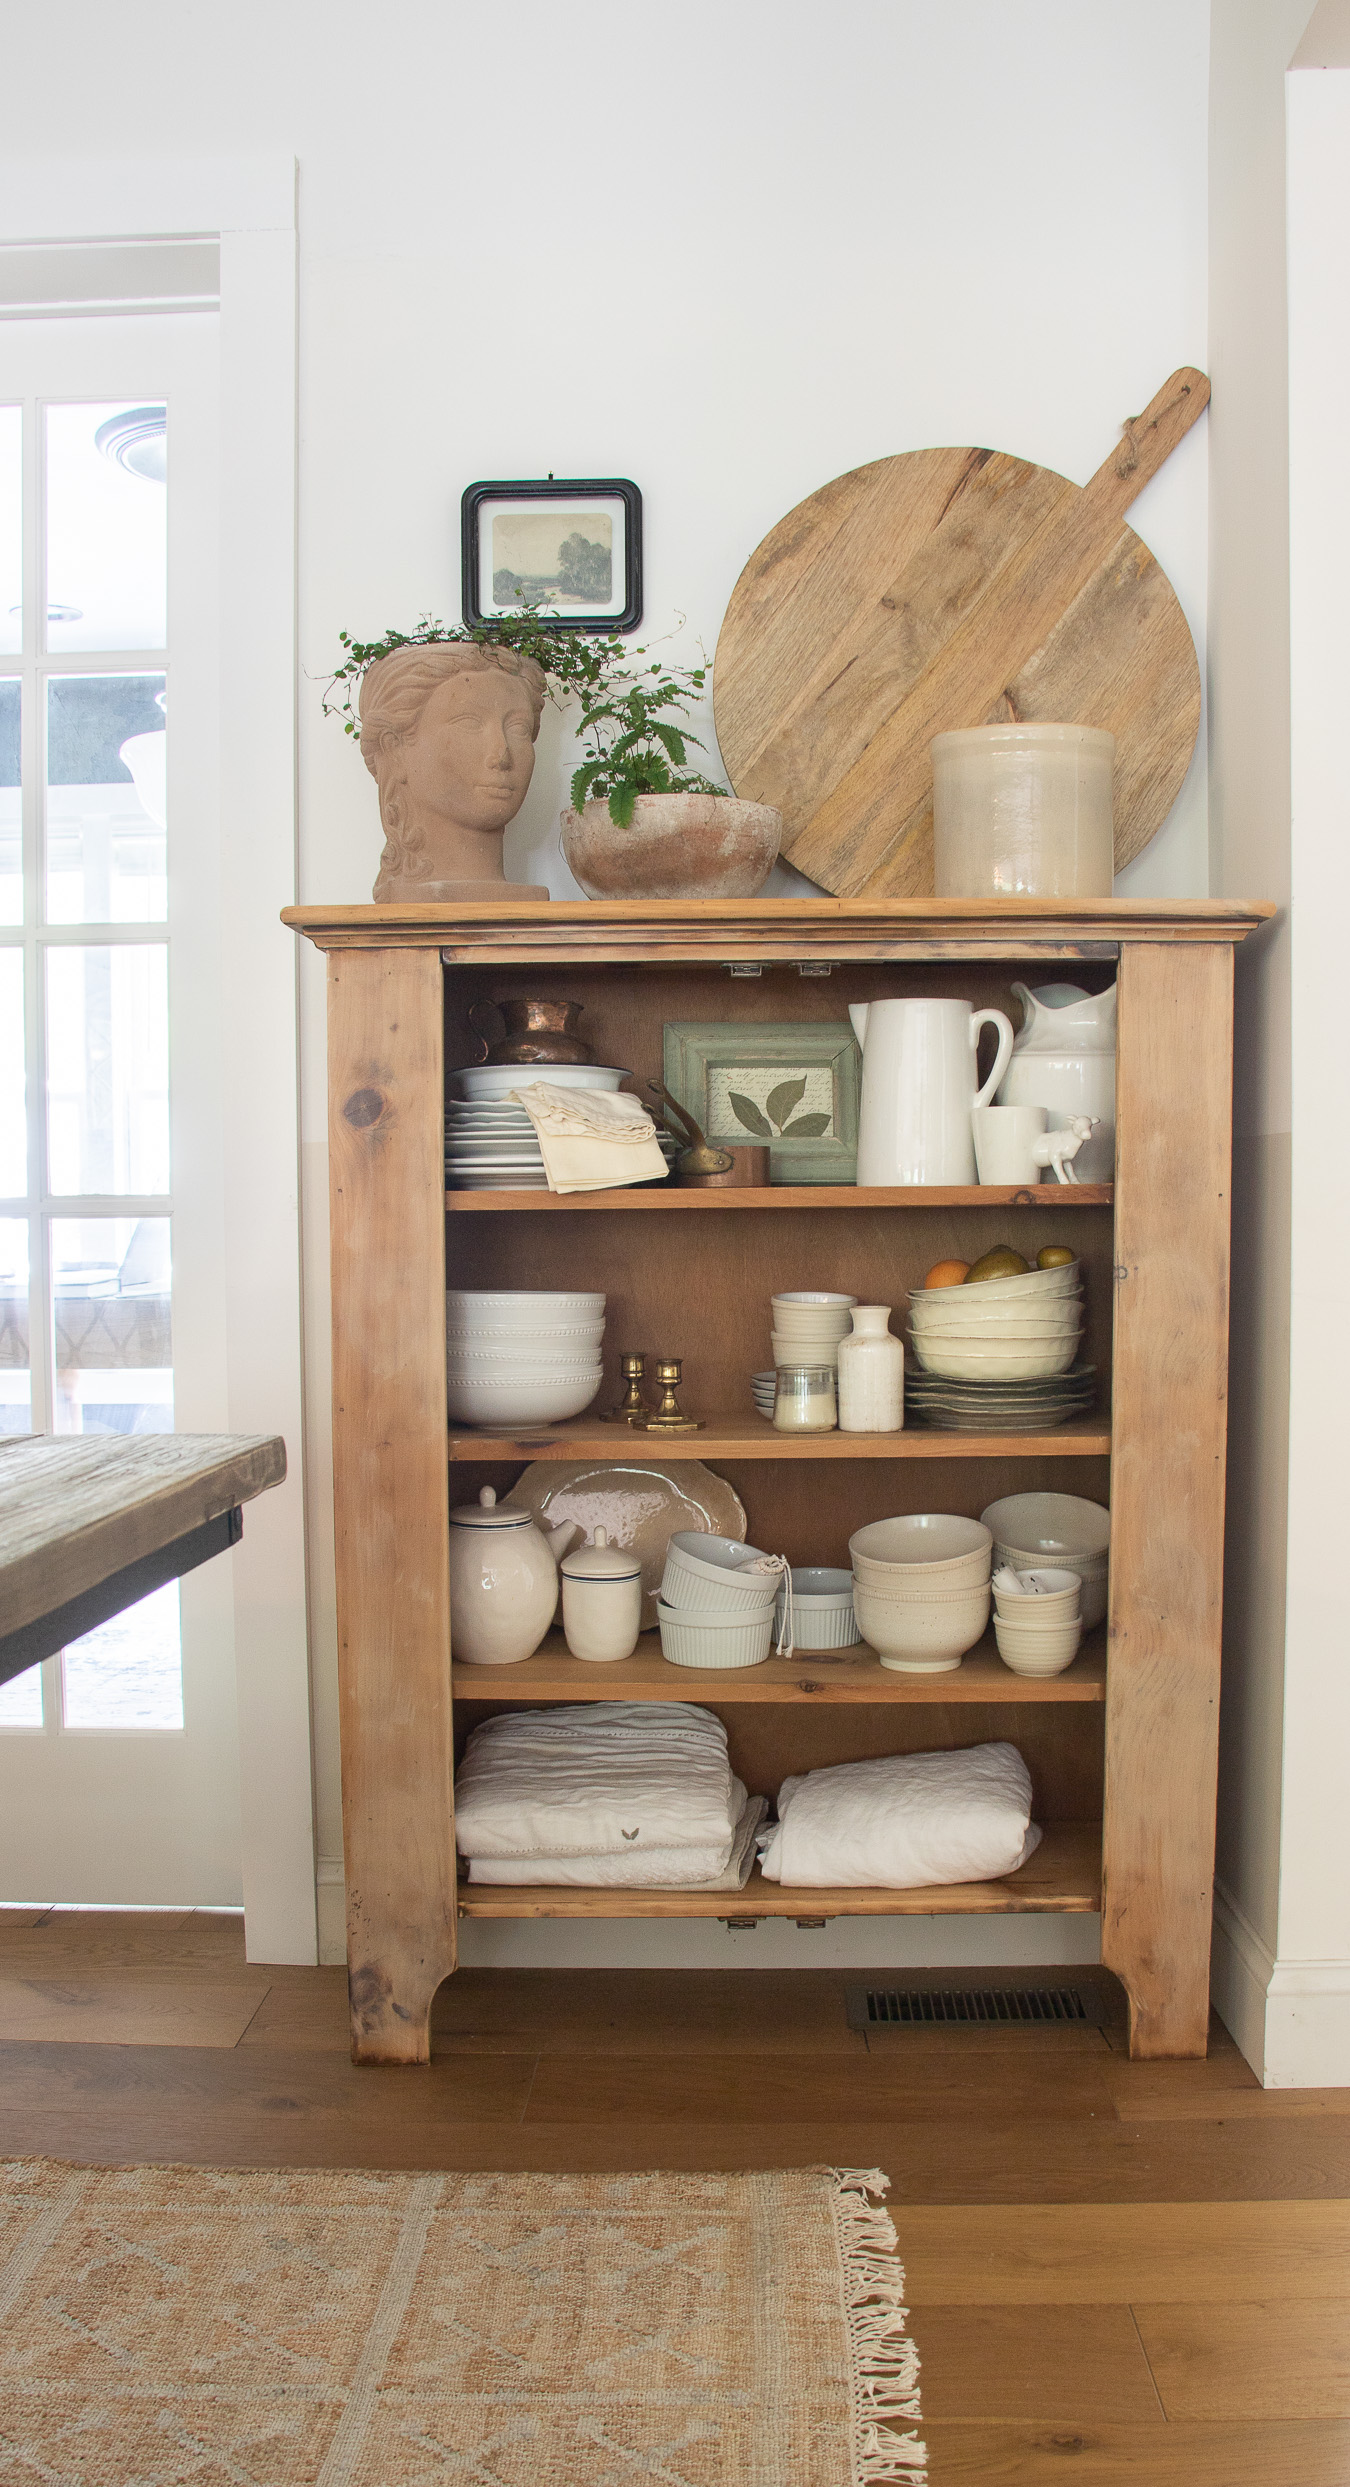 Beautiful display of vintage serving pieces and cutting boards #vintage #vintagedecor #farmhouse #farmhousedecor #neutraldecor #diningroomdecor